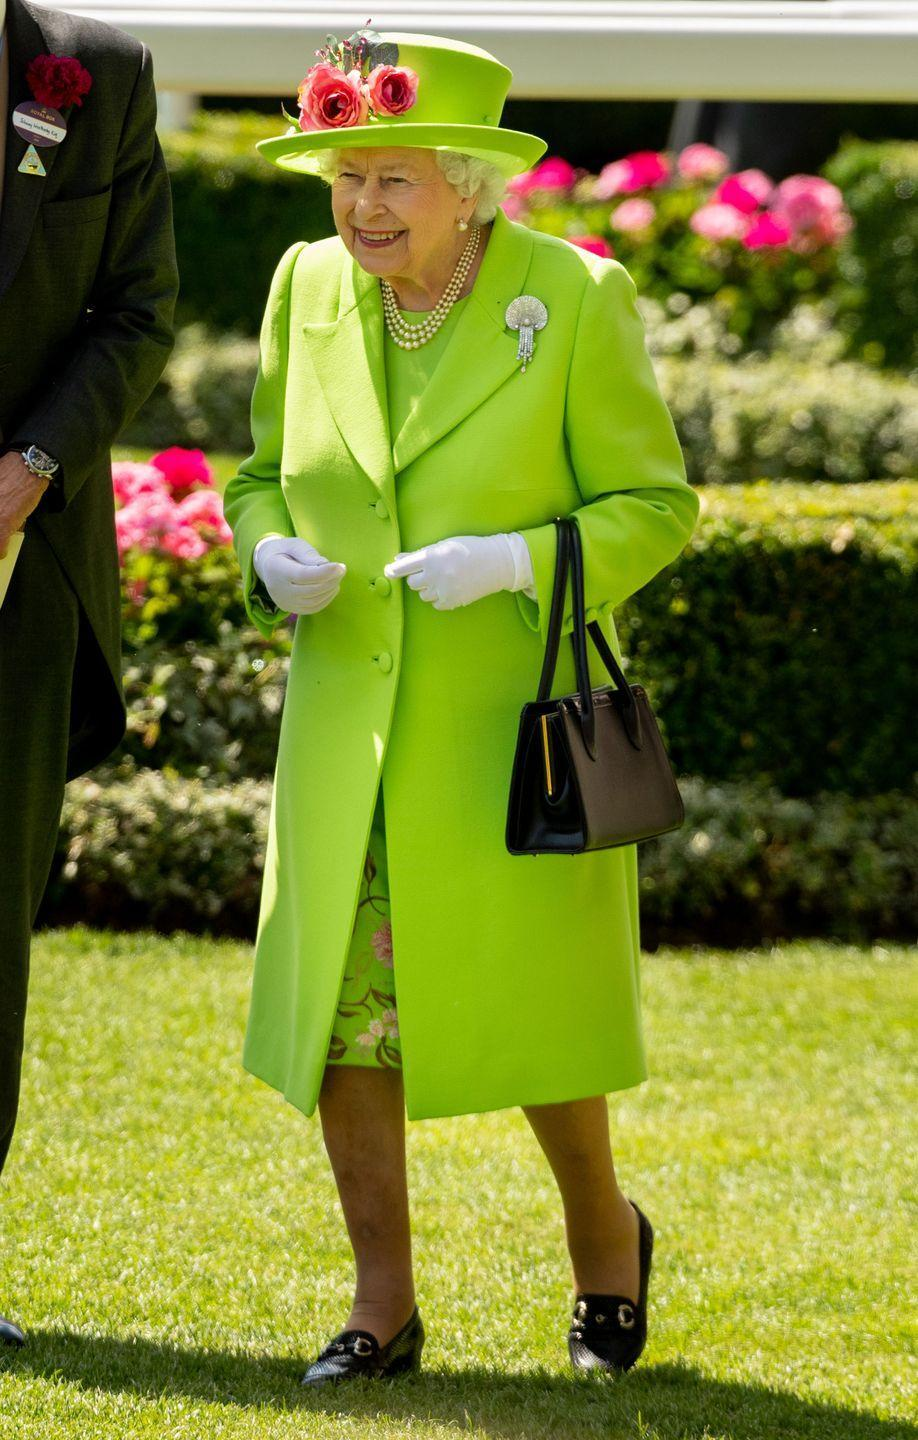 <p>Queen Elizabeth is also known for her bright ensembles. The neon green hat, jacket and dress that she wore to the Royal Ascot in 2018 reminds us of the shade Peter Pan's pal, Tinker Bell, is known for wearing.</p>